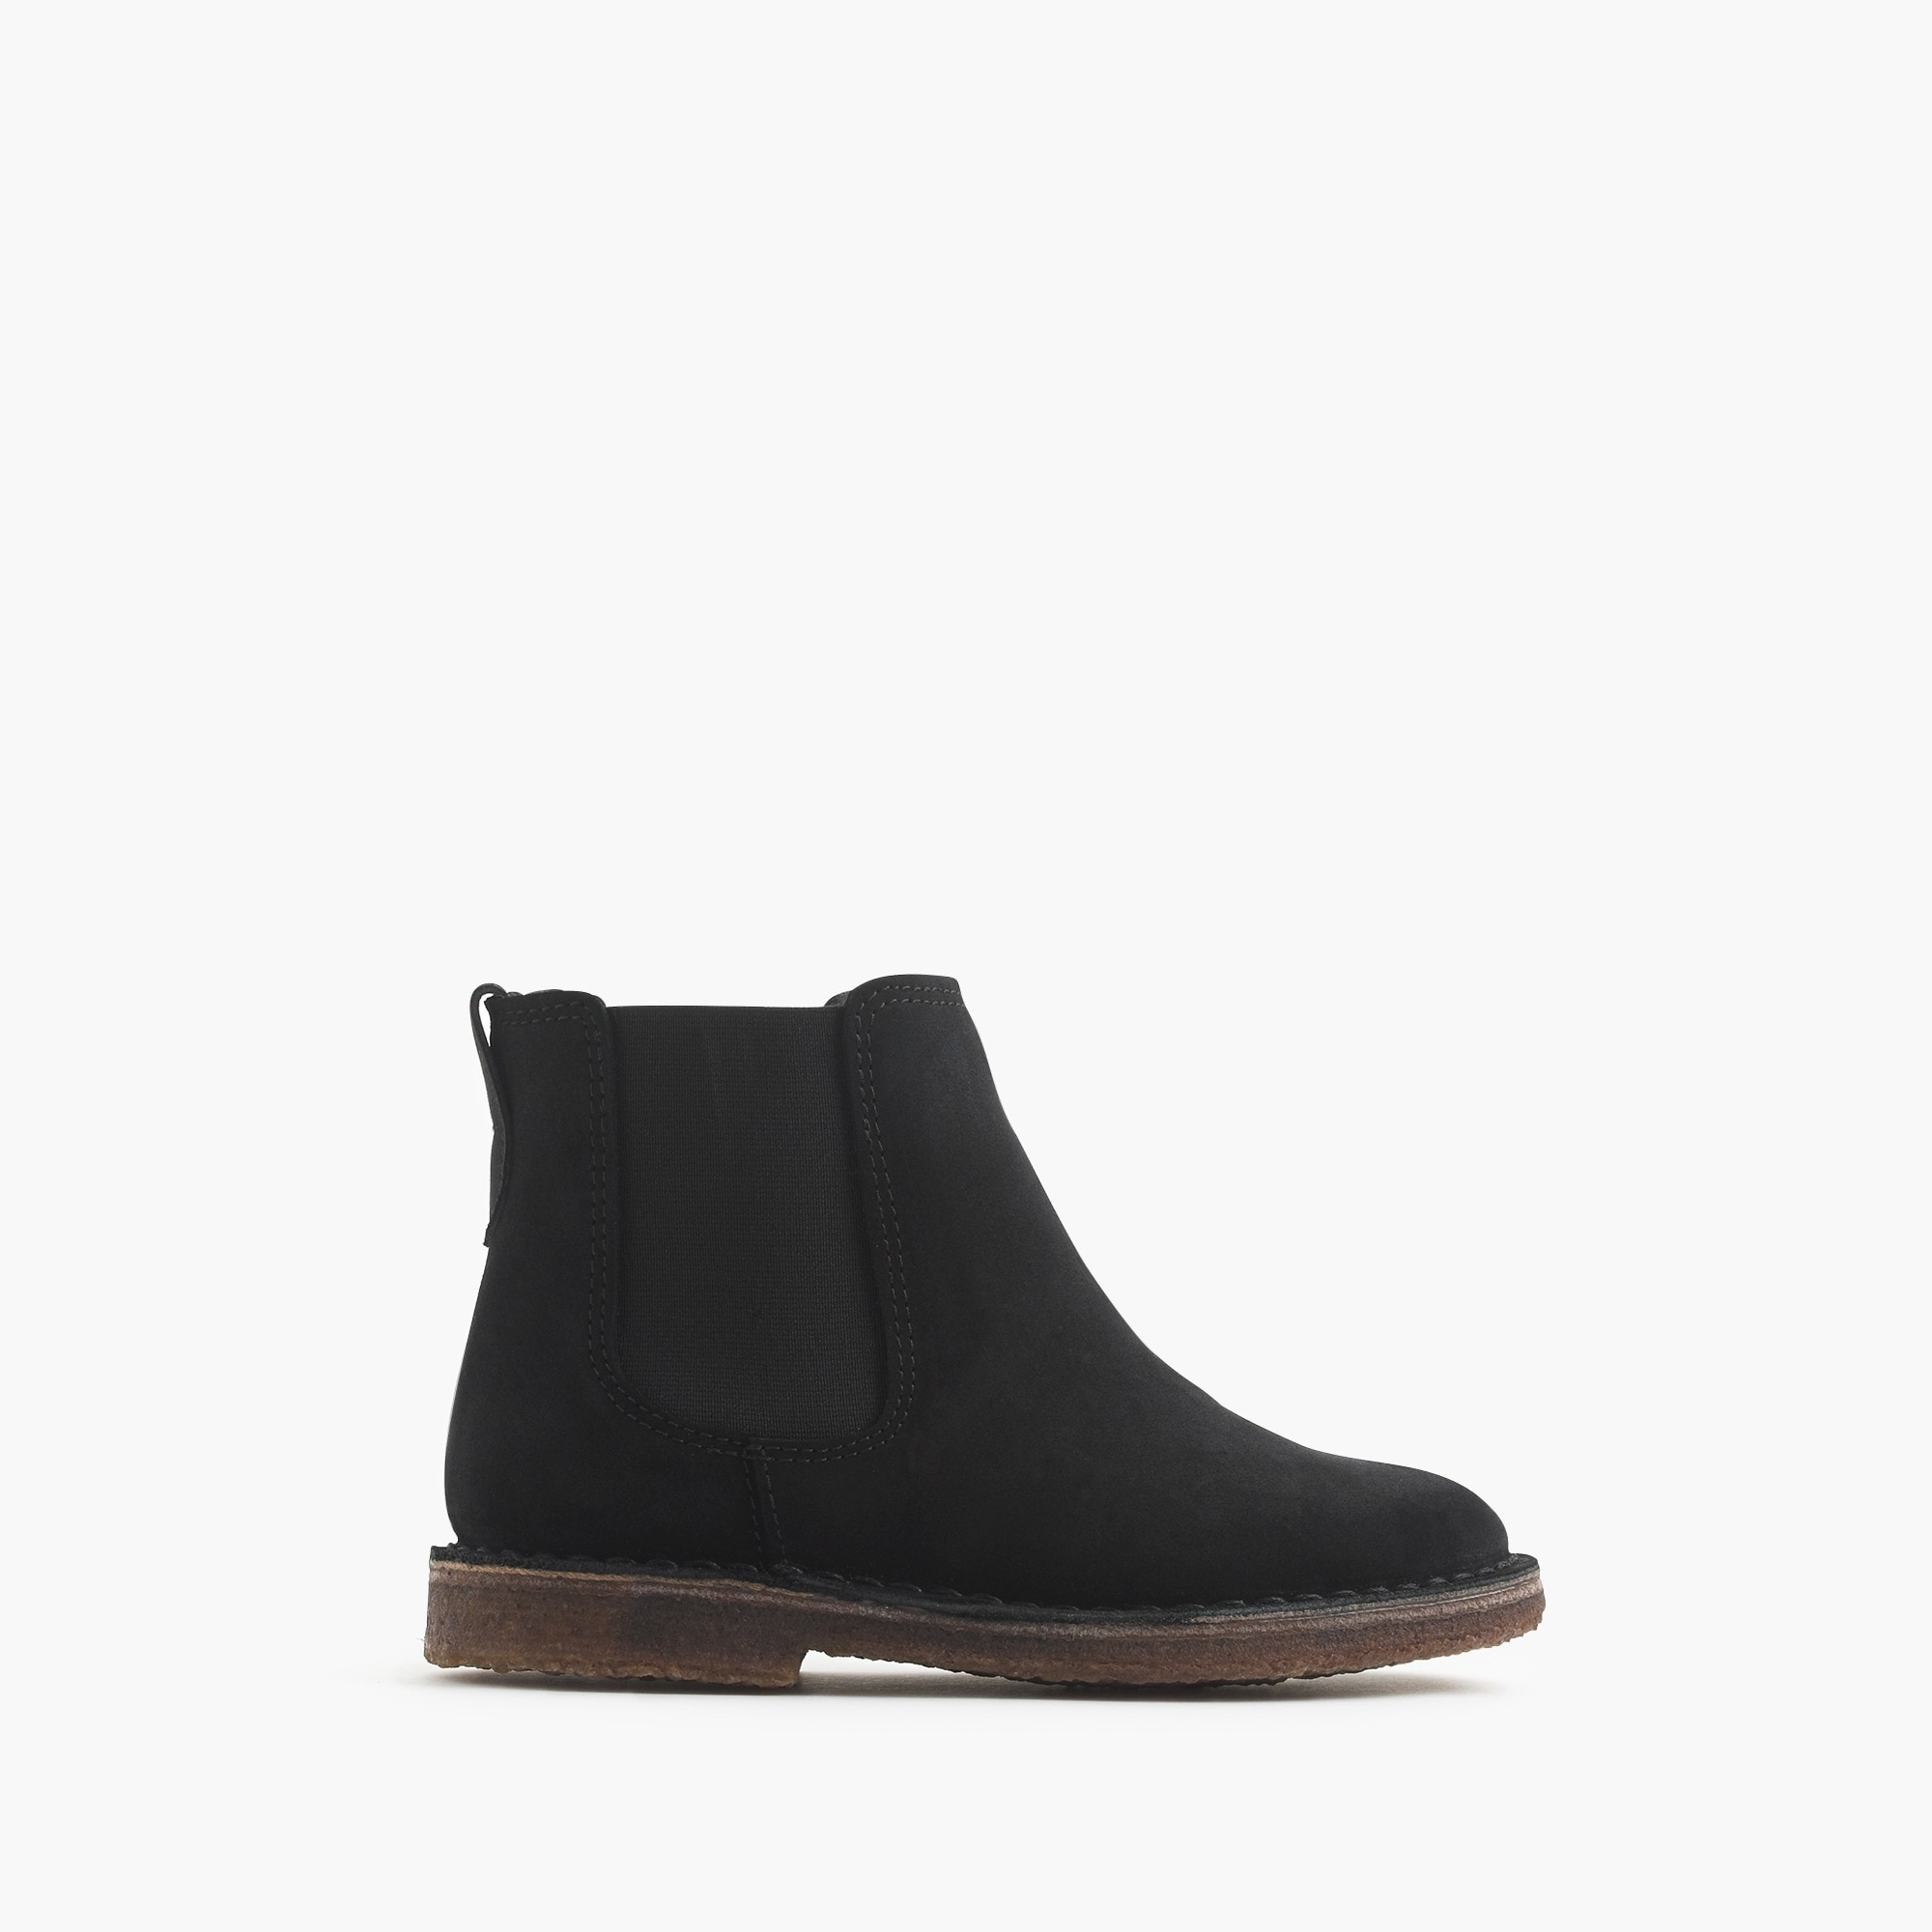 Image 2 for Girls' suede Chelsea boots with sherpa lining